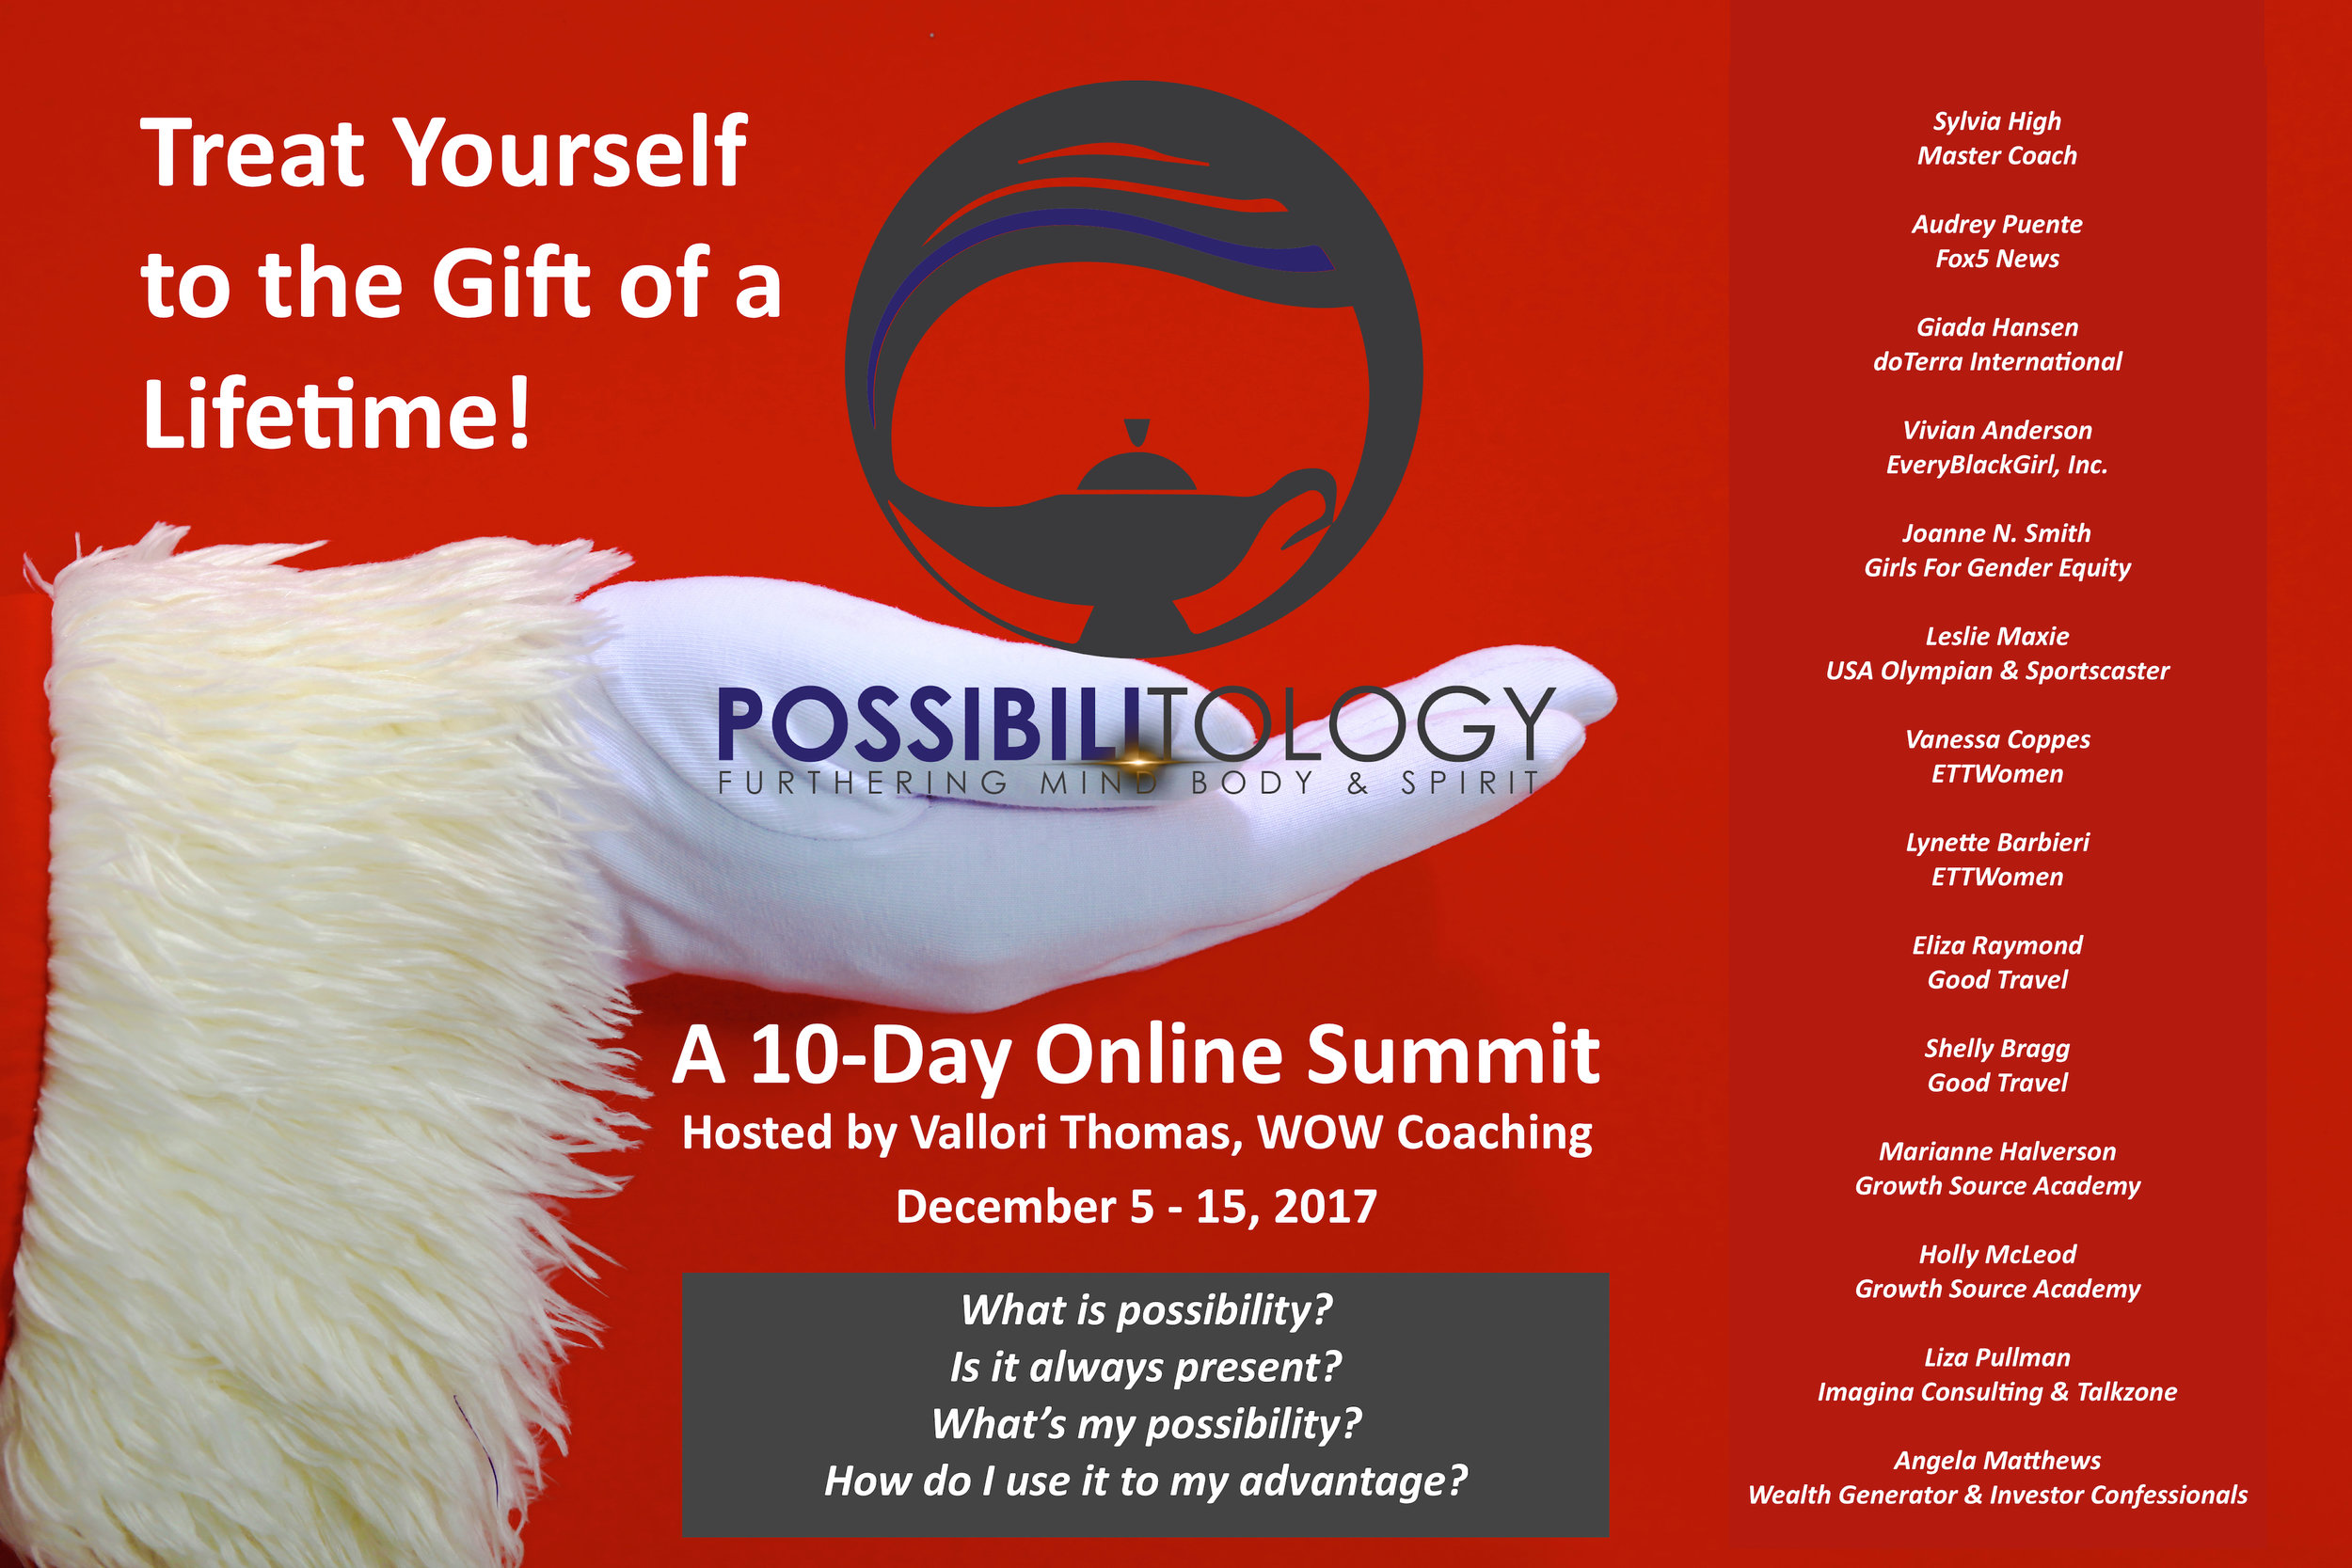 Possibility Summit - online December 5th - 15th 2017 - Join Imagina for this 10 day belief-busting SUMMIT towards POSSIBILITOLOGY. Experts from around the globe will re-program your perspective to clear the pathway to your PURPOSE Join in this spectacular journey of possibilities. Register here.